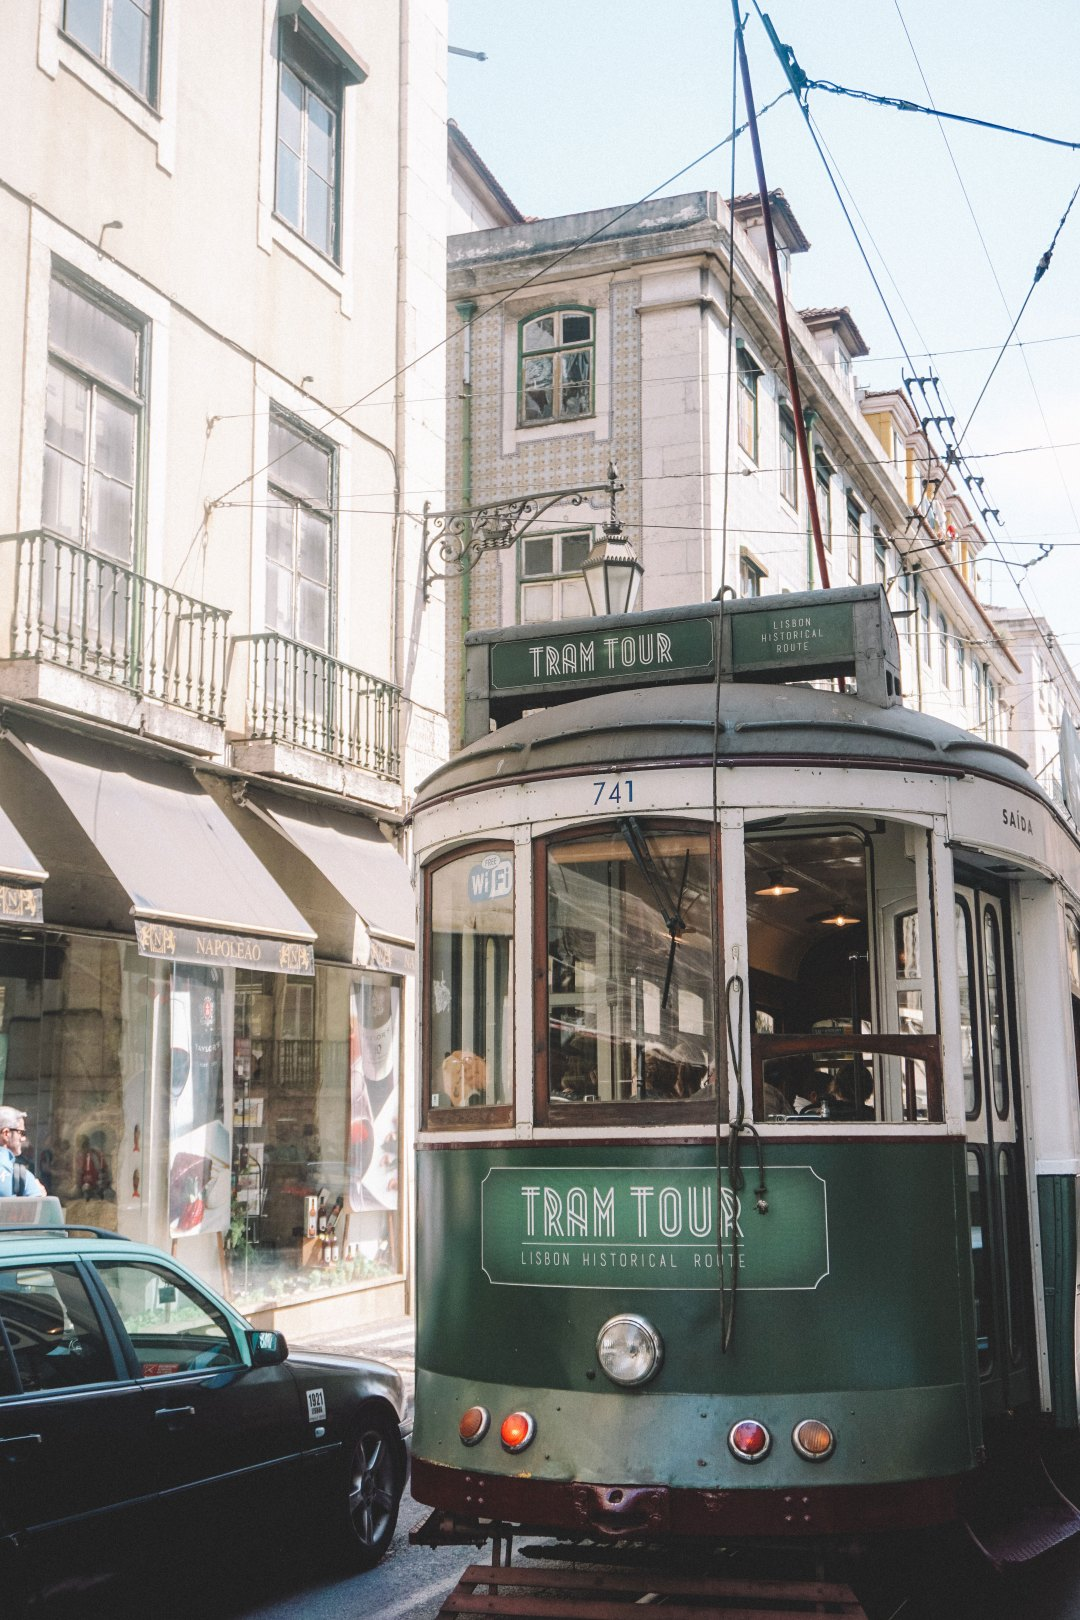 Tram. Lisbon City Guide, Portugal. Eurovision Song Contest 2018 All Aboard. Blog by Skirmantas Petraitis.